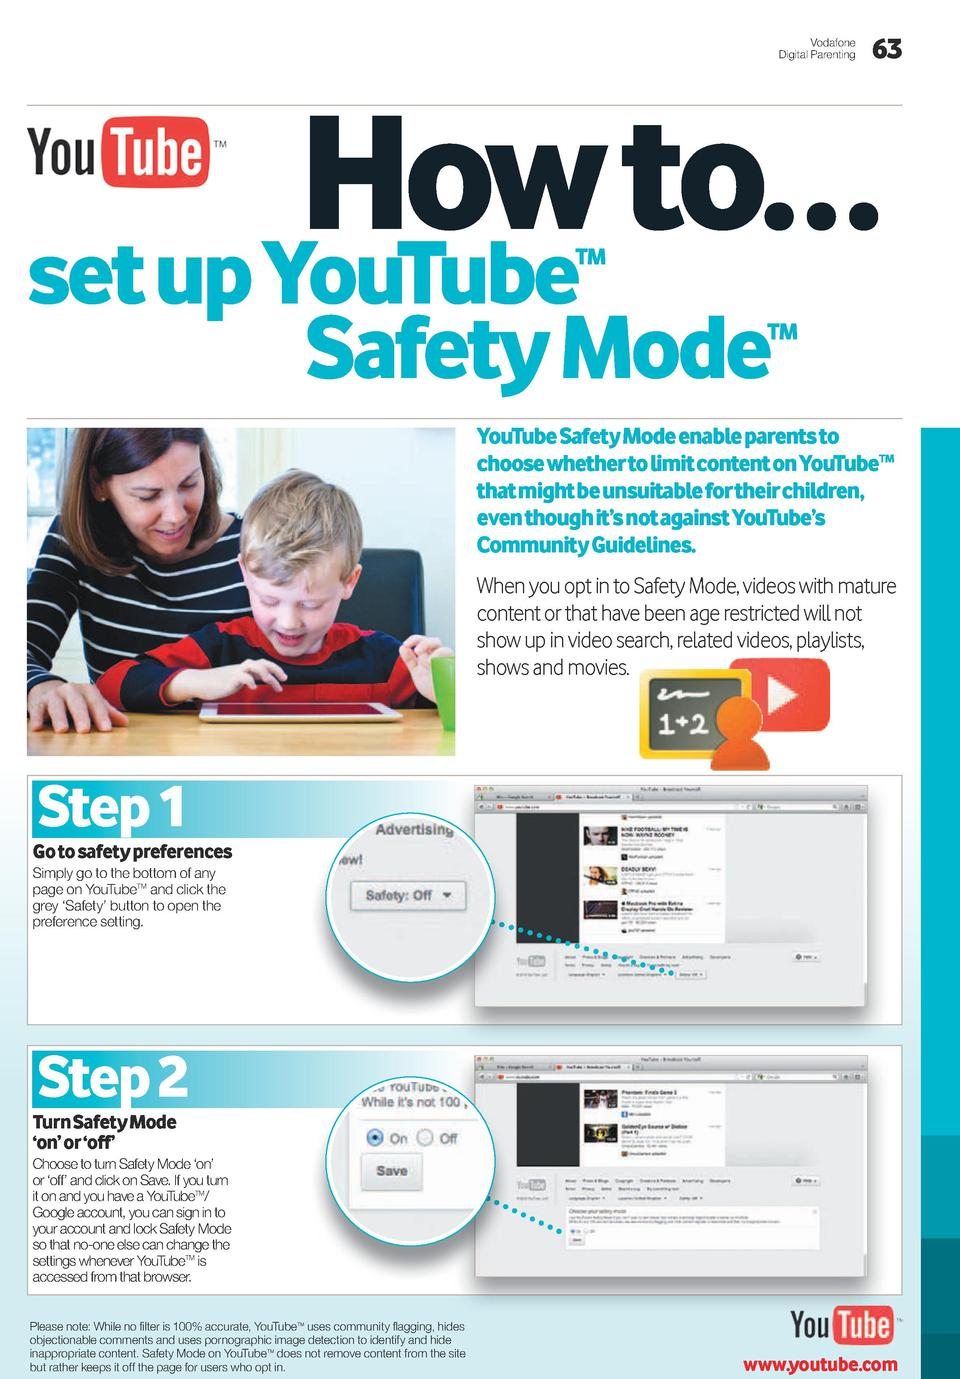 Vodafone Digital Parenting  63  how to    set up youTube TM  Safety Mode  TM  youTube Safety Mode enable parents to choose...